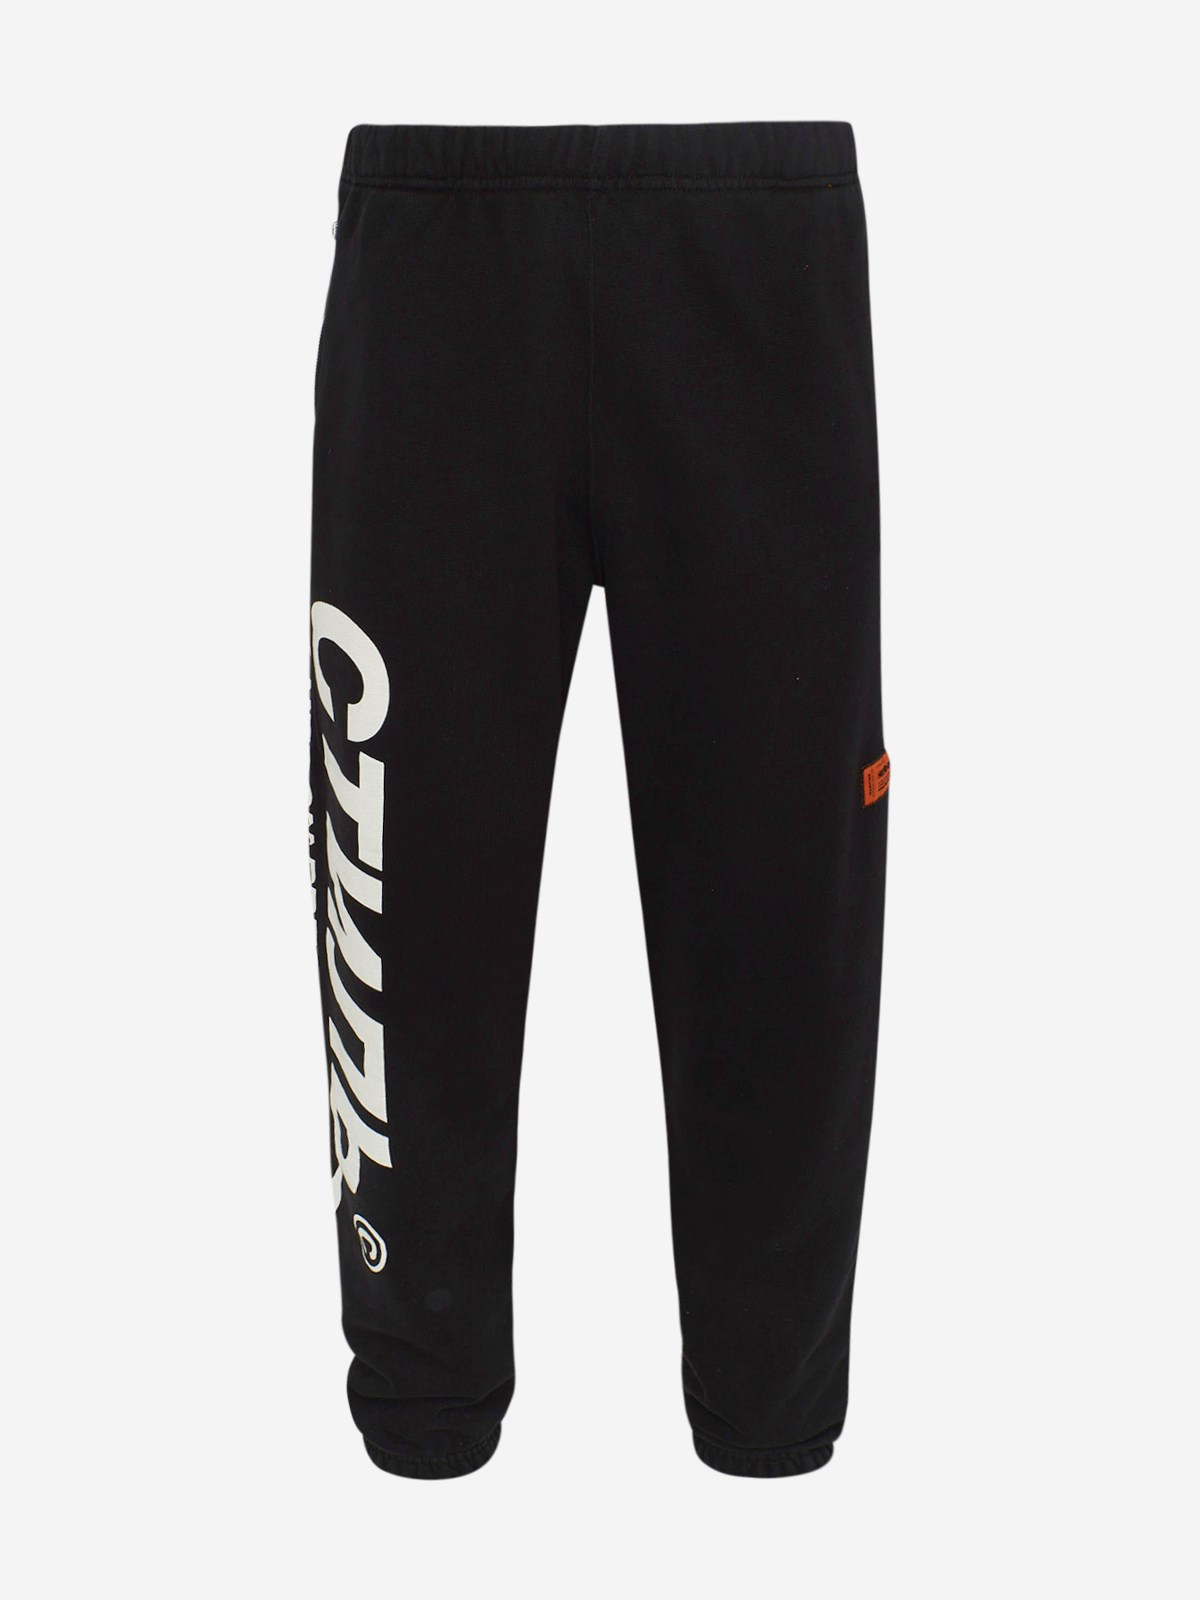 Heron Preston BLACK PANTS